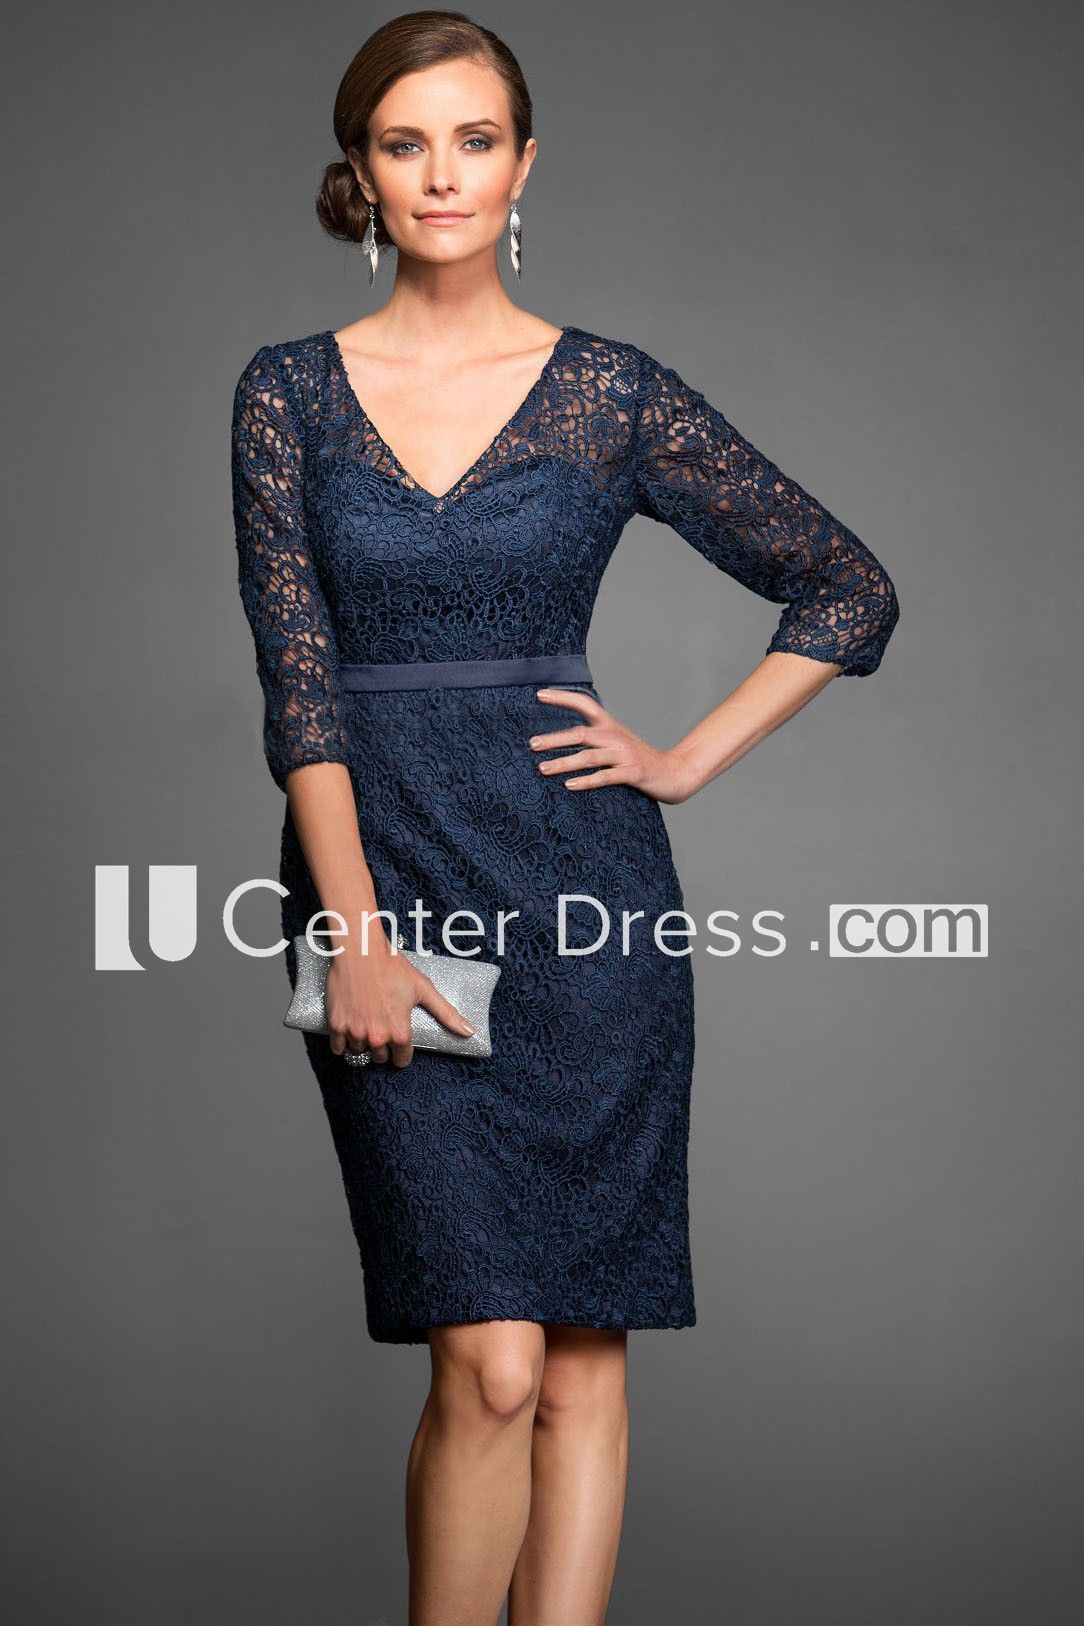 3 4 Sleeved V Neck Knee Length Lace Sheath Mother Of The Bride Dress With Illusion Detail Ucenter Dress Wedding Attire Guest Guest Attire Short Lace Dress [ 1626 x 1084 Pixel ]